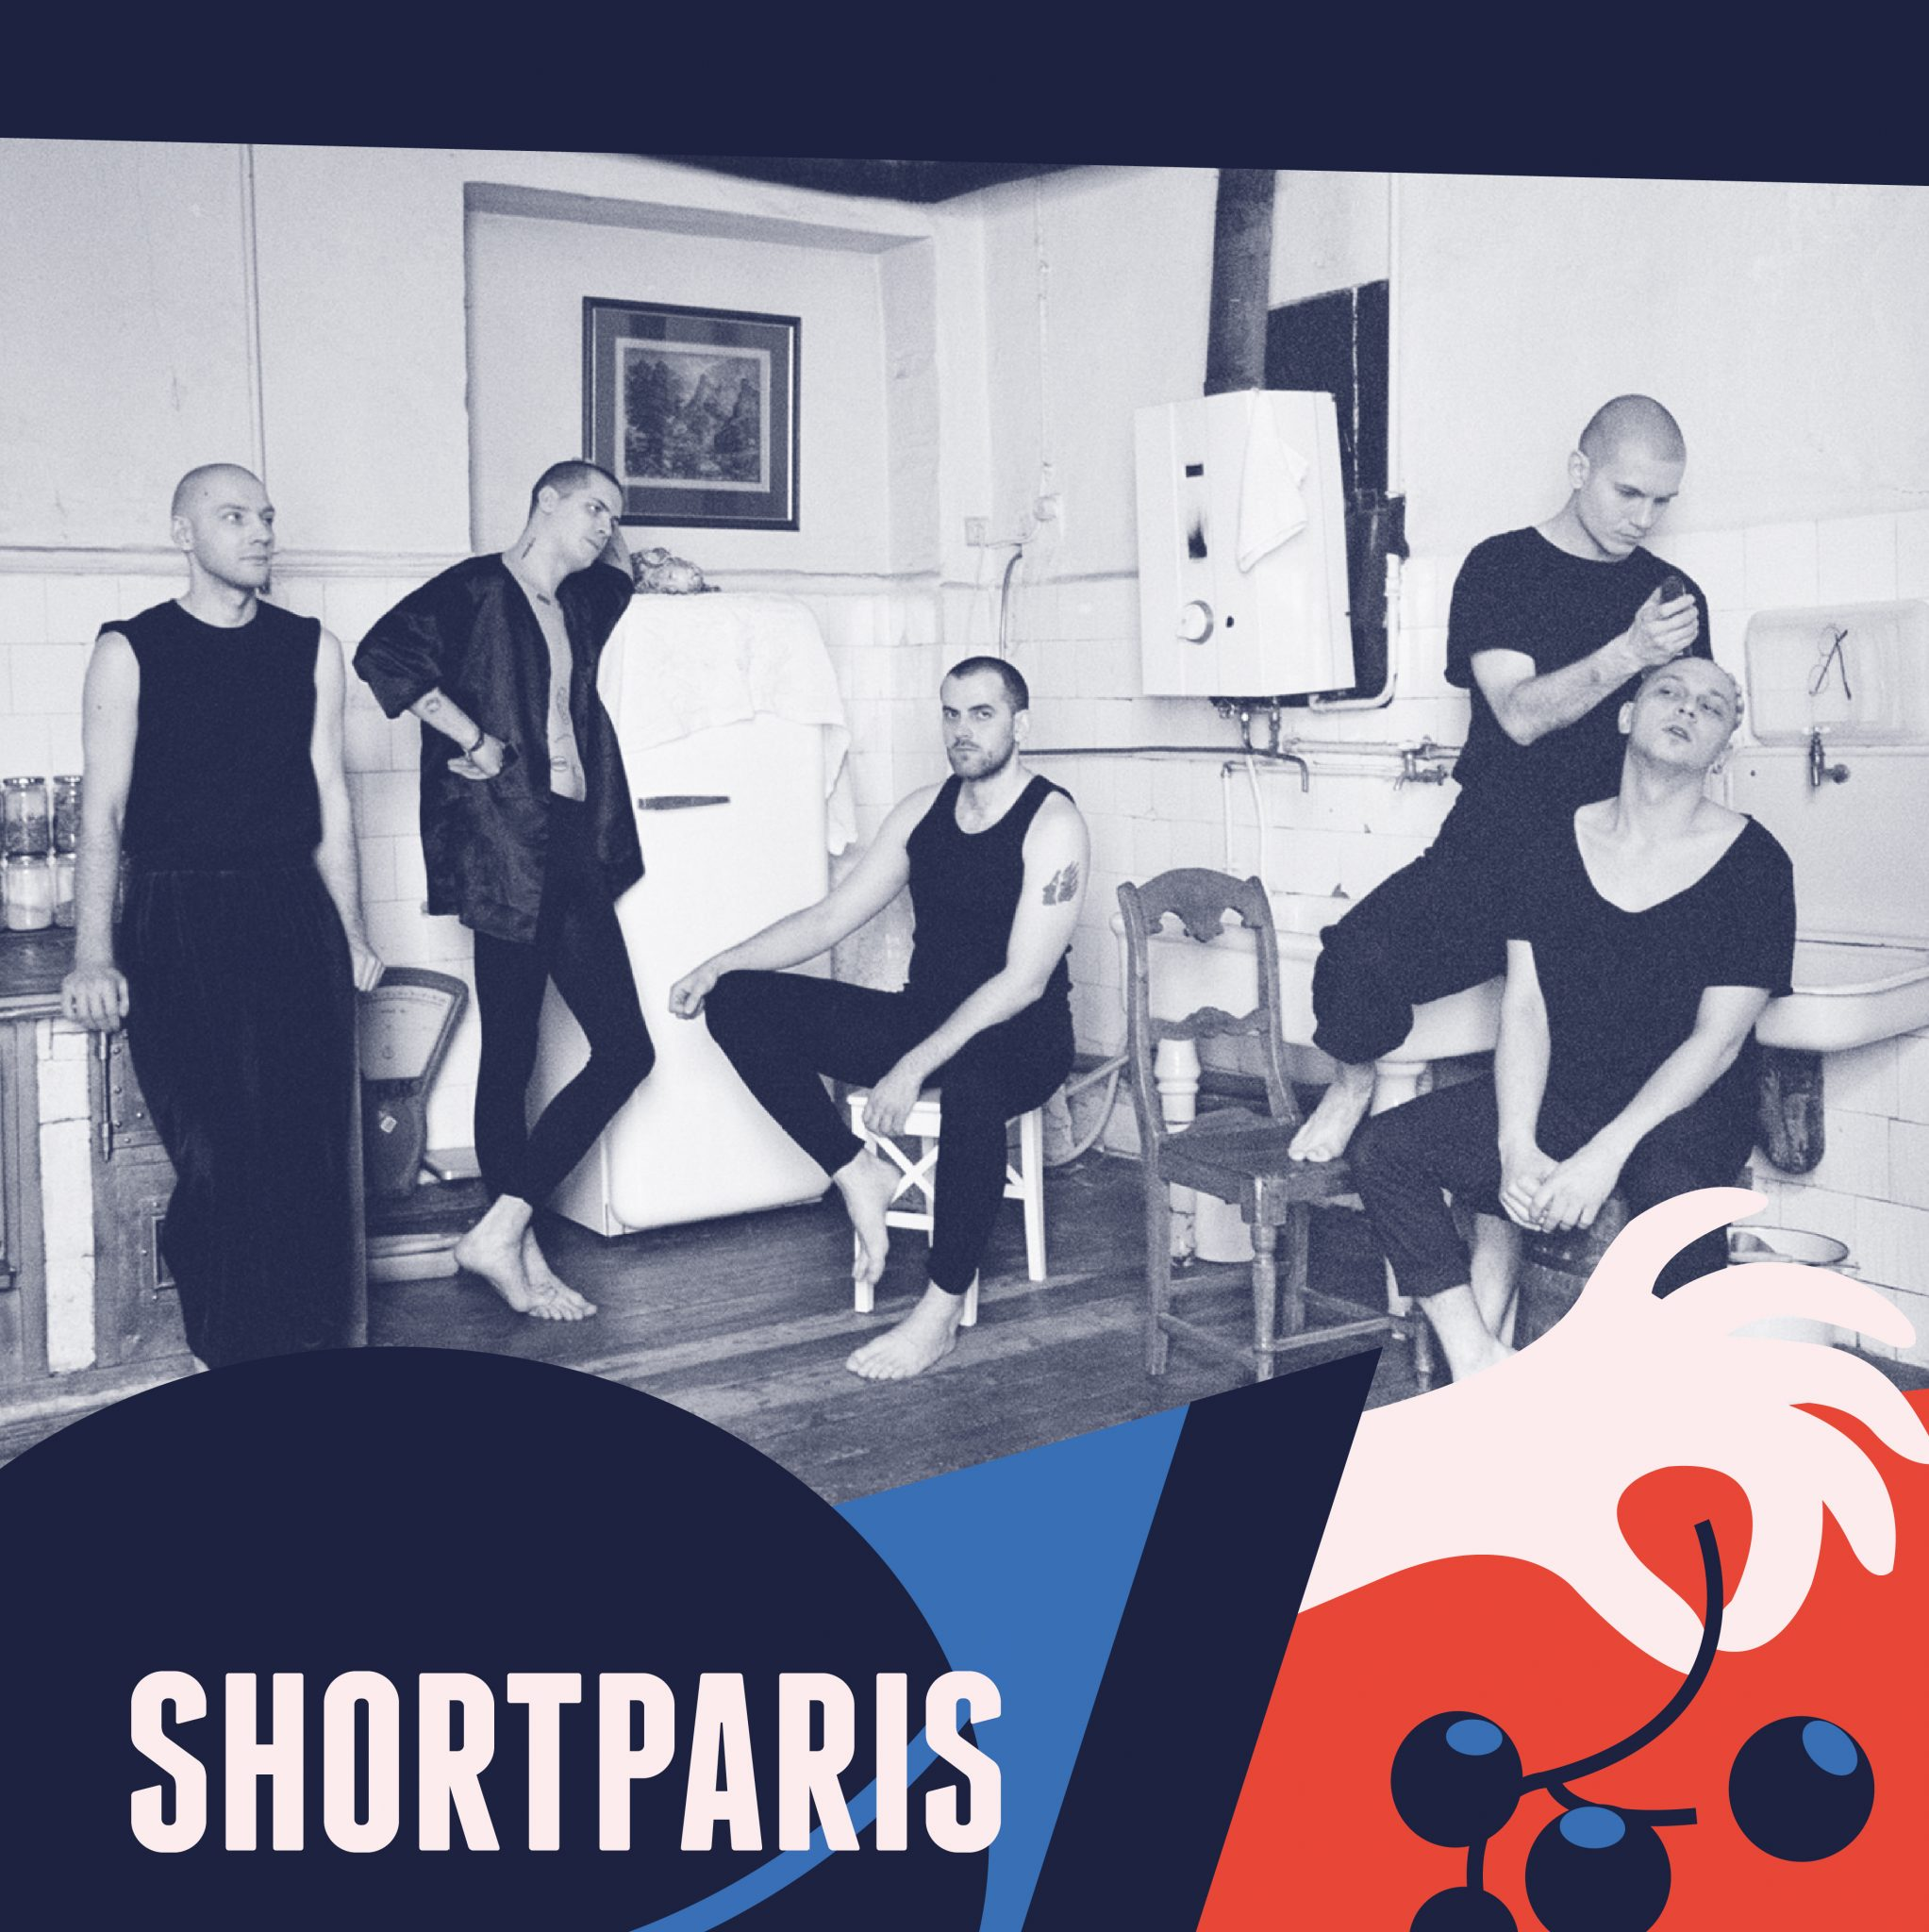 Shortparis - Peel Slowly and See 2020